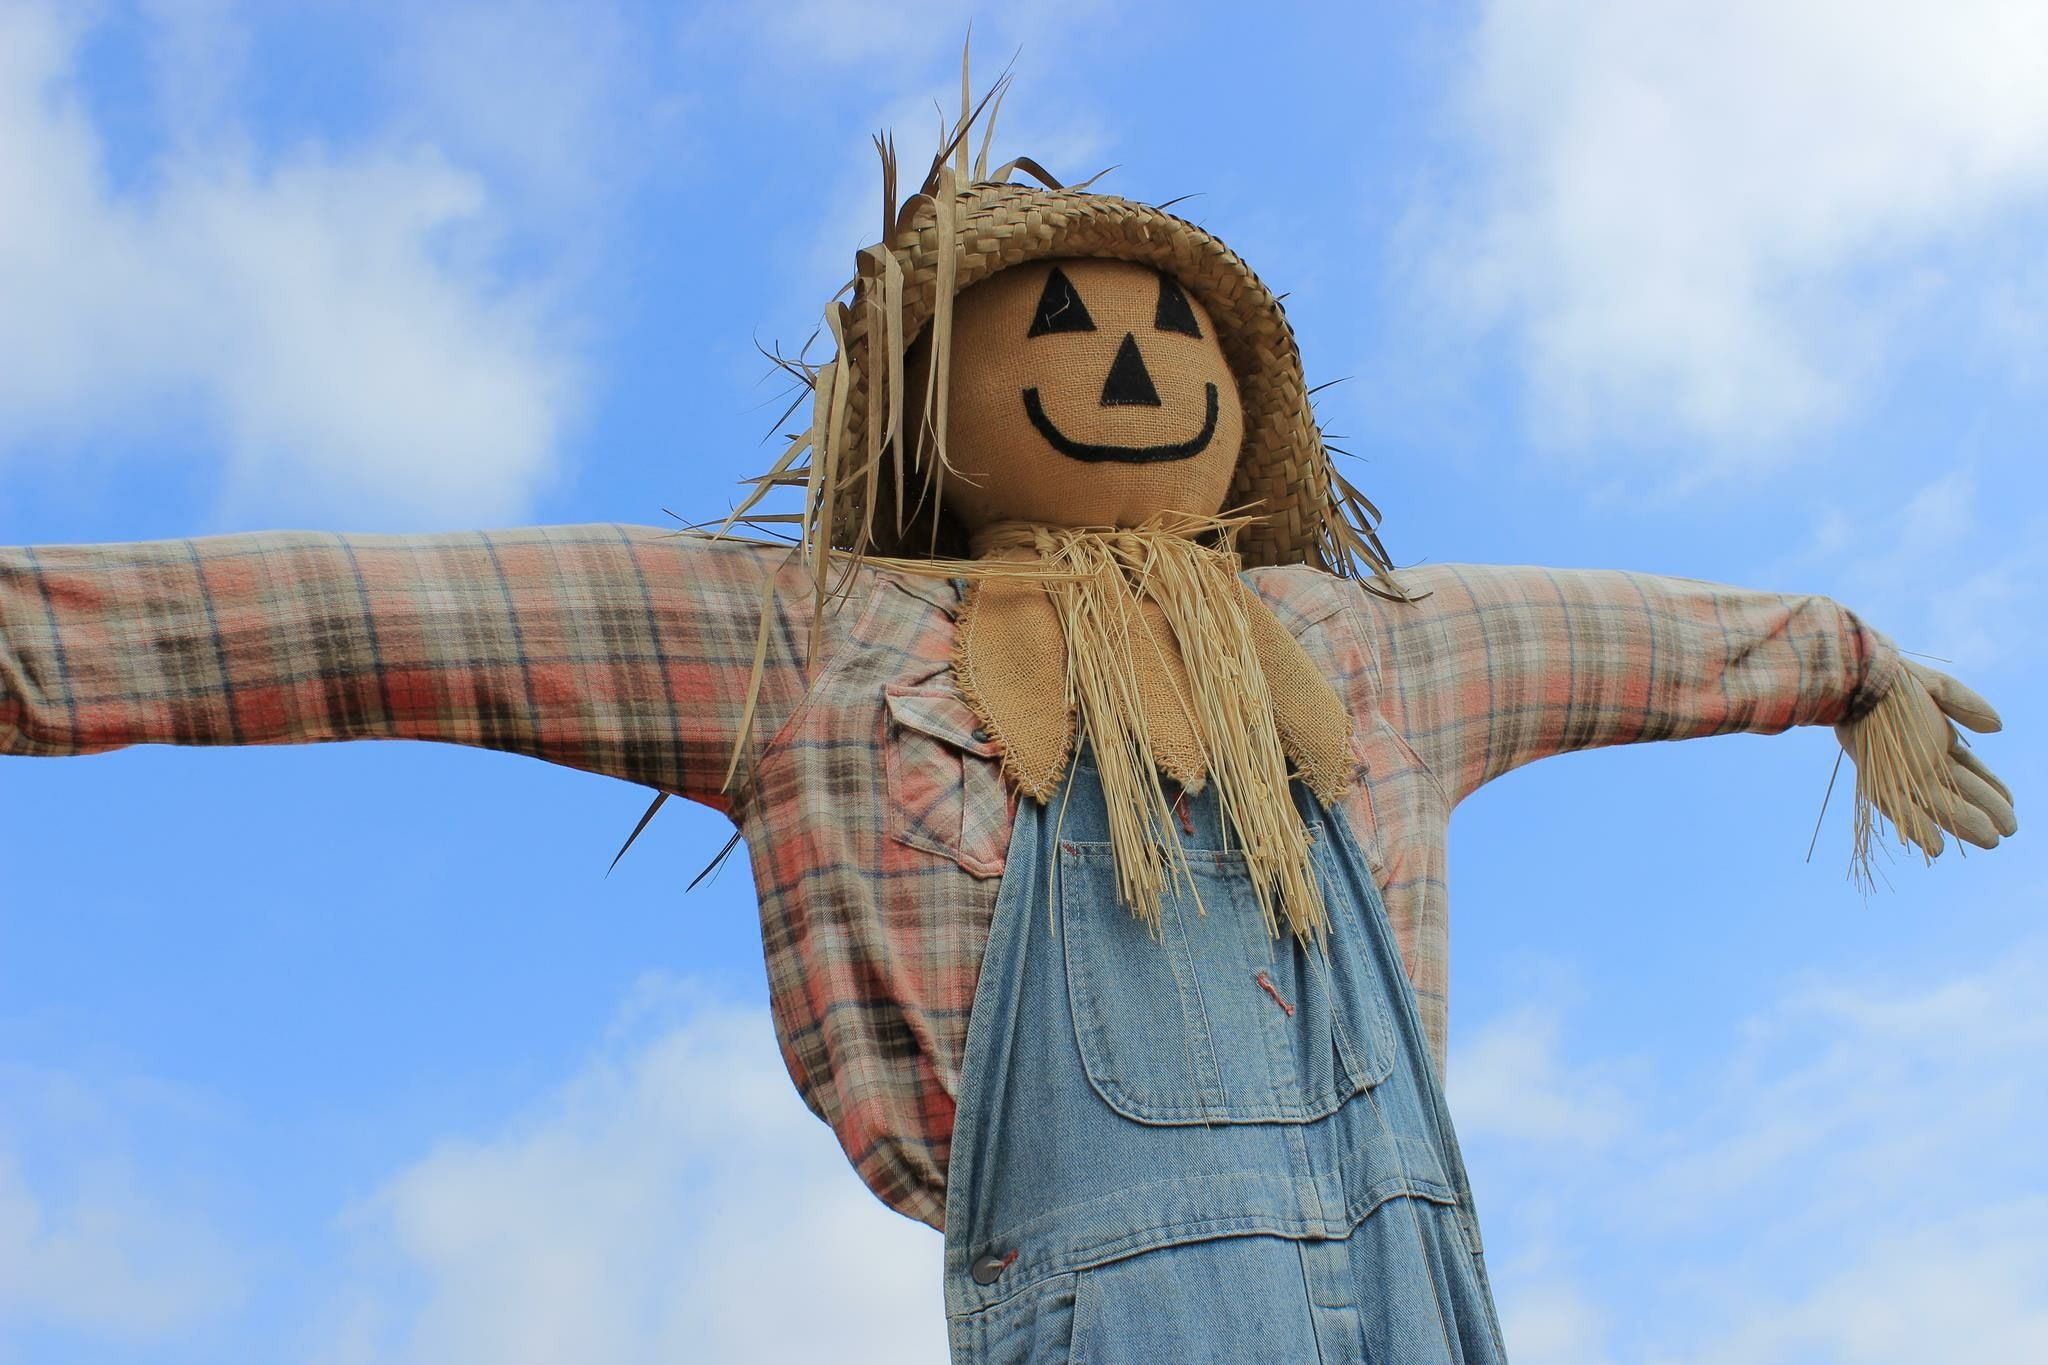 Name:  low-angle-view-scarecrow-against-cloudy-sky-562838541-5aaf18adfa6bcc00360a609c.jpg Views: 140 Size:  288.4 KB